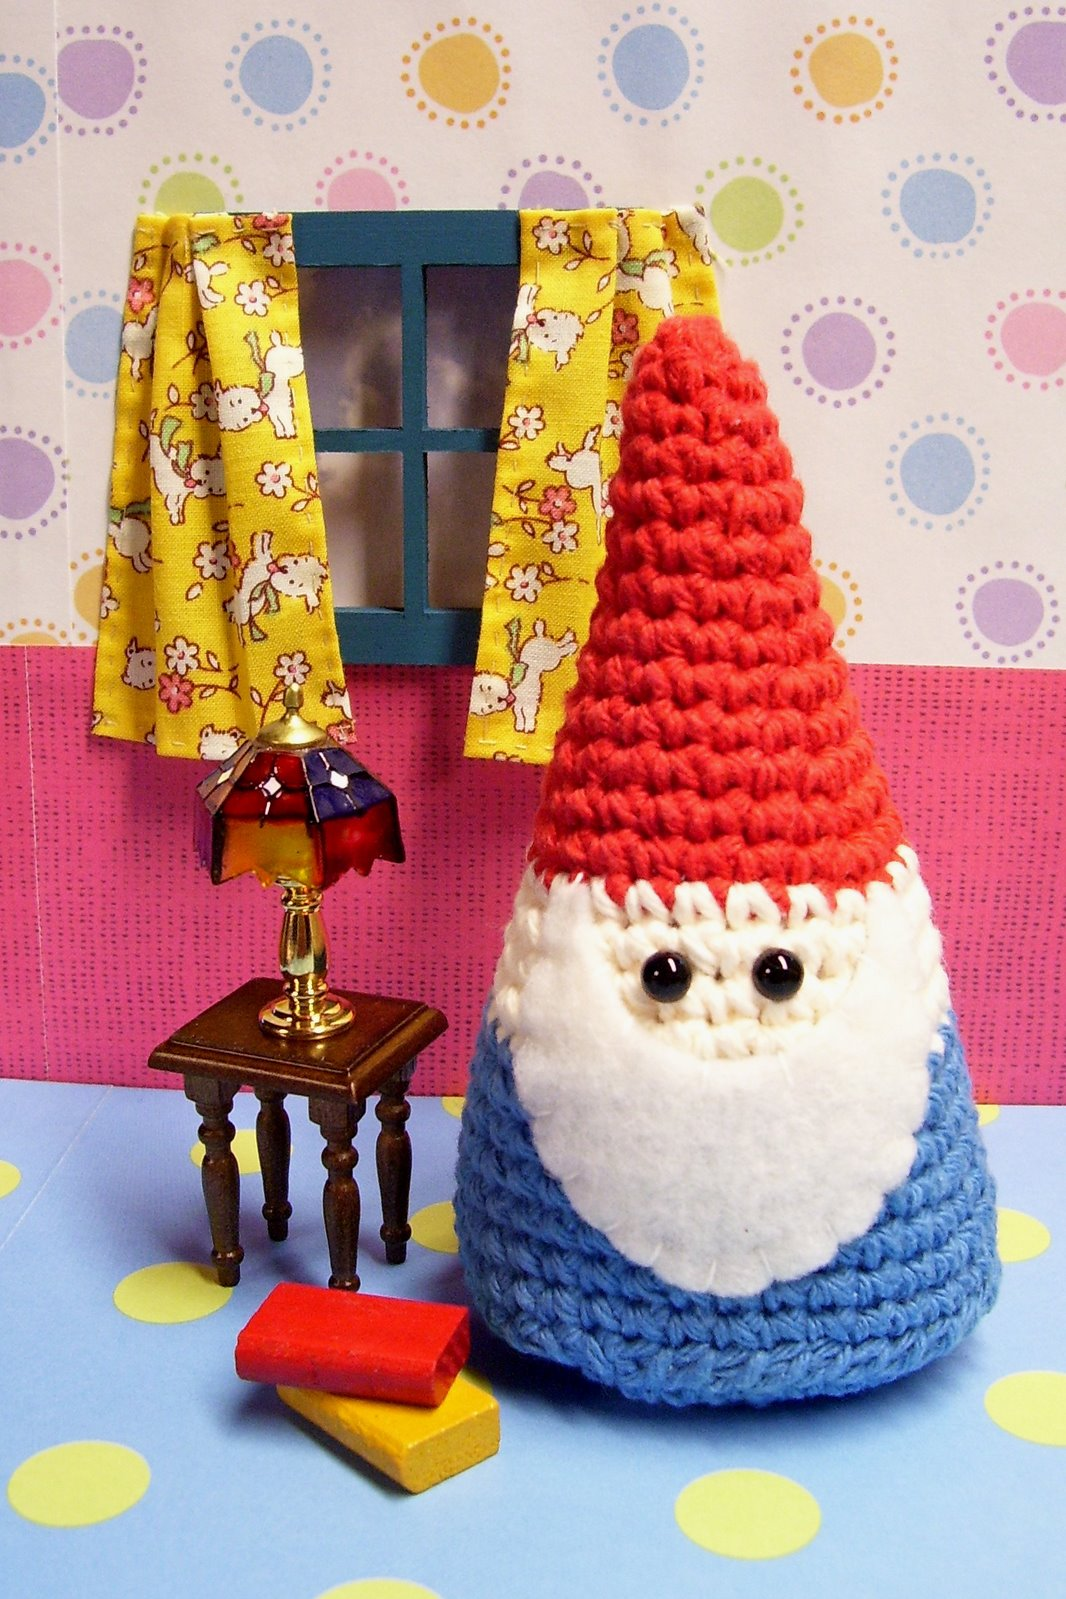 Simple Gnome - Free amigurumi pattern